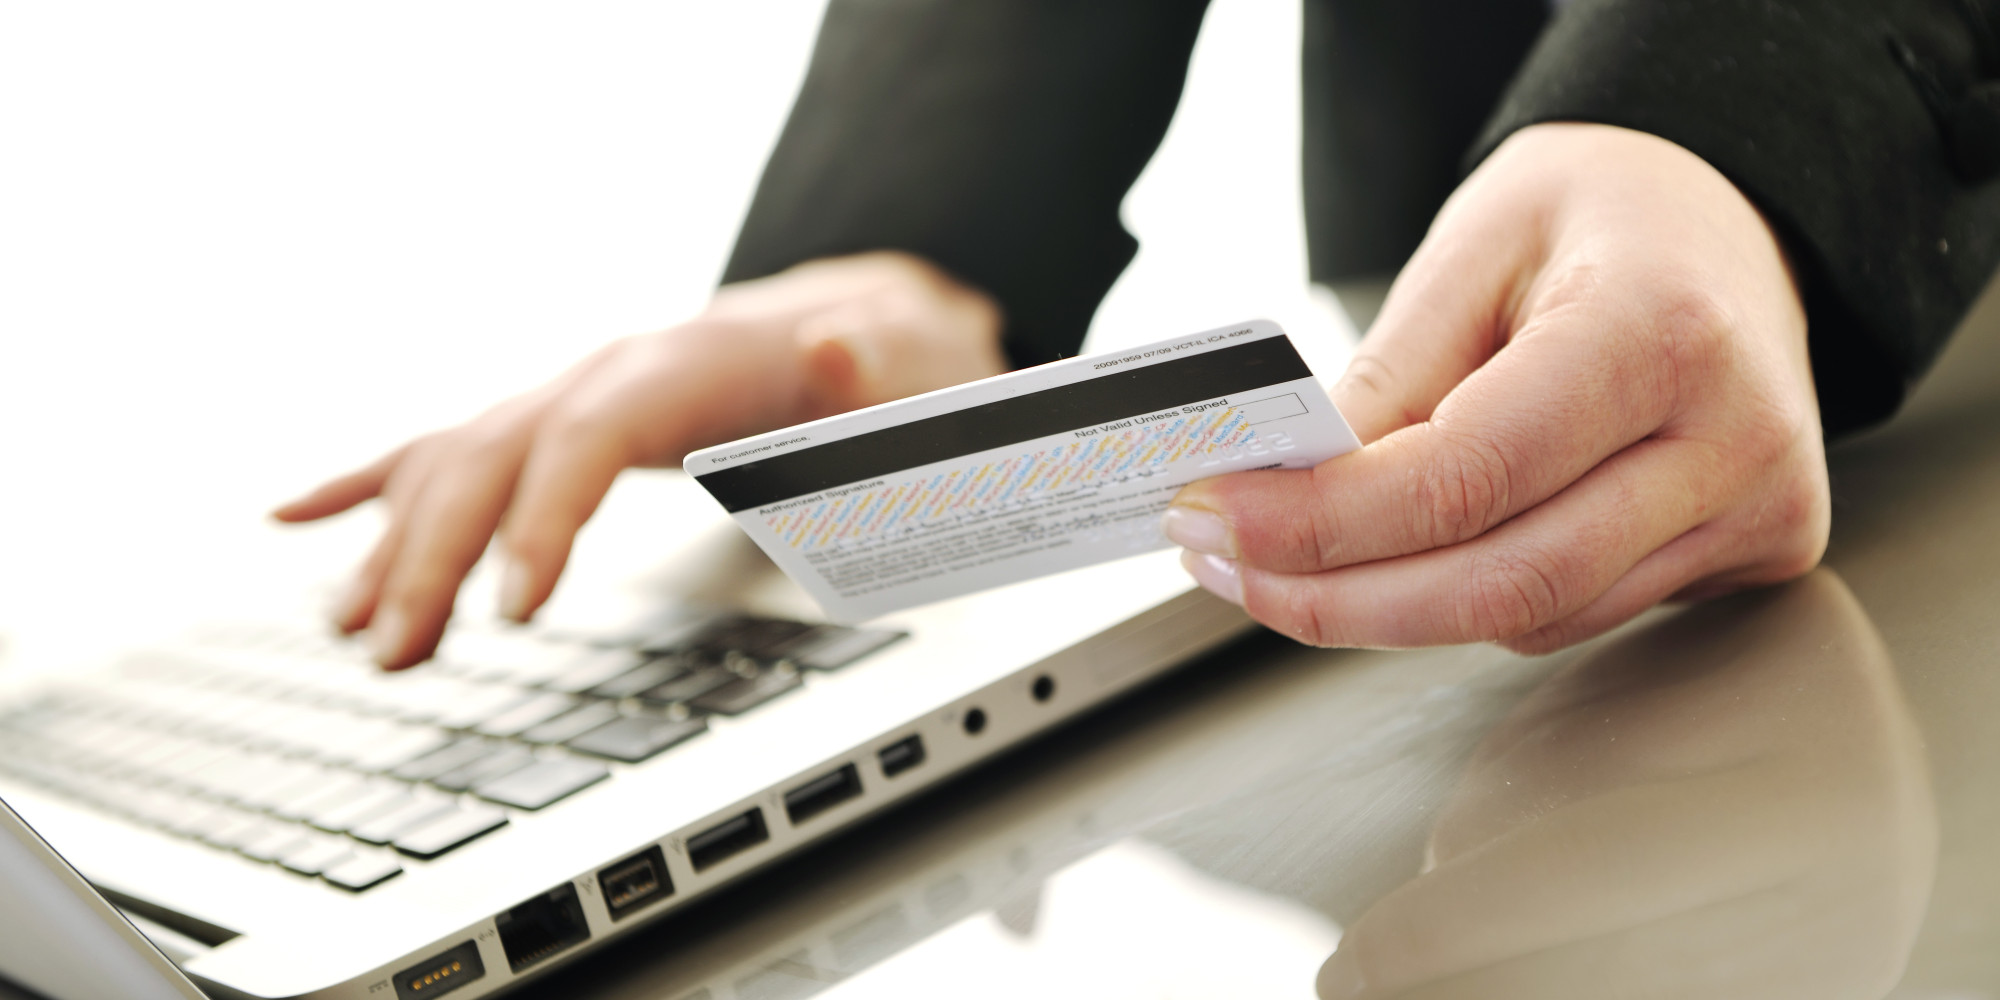 Malicious software used to hack into bank accounts